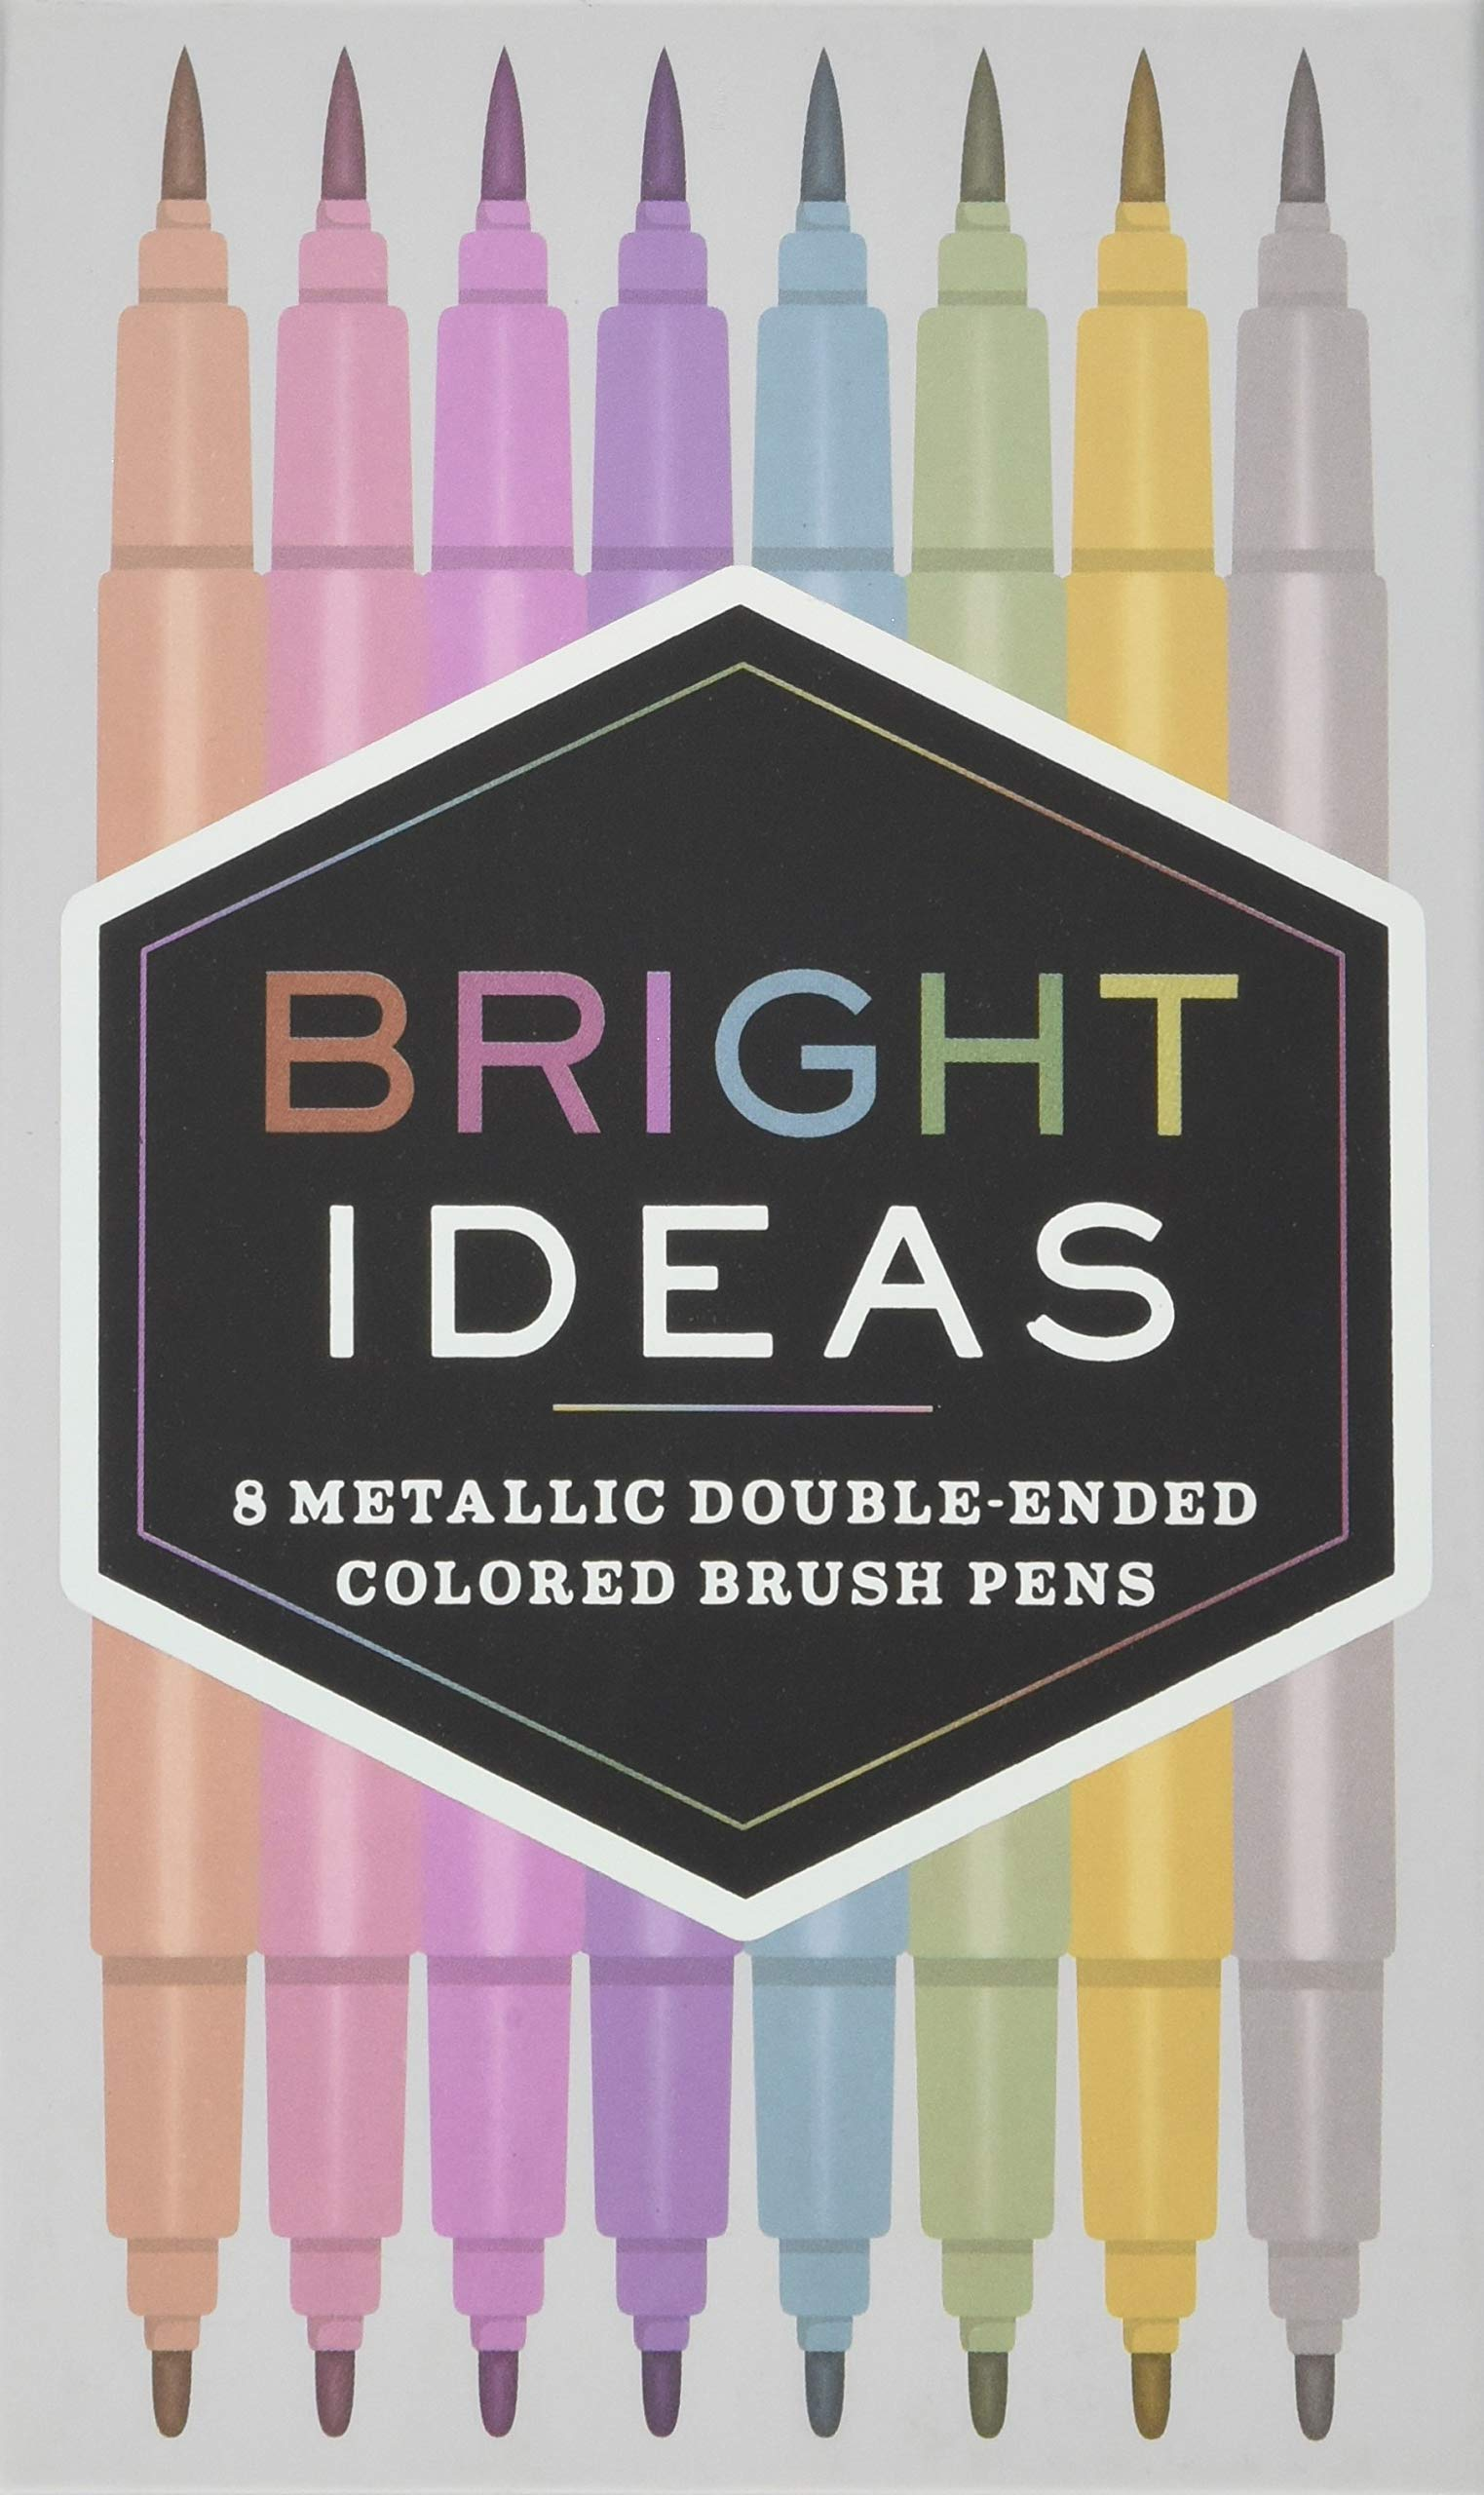 Bright Ideas: 8 Metallic Double-Ended Colored Brush Pens PDF